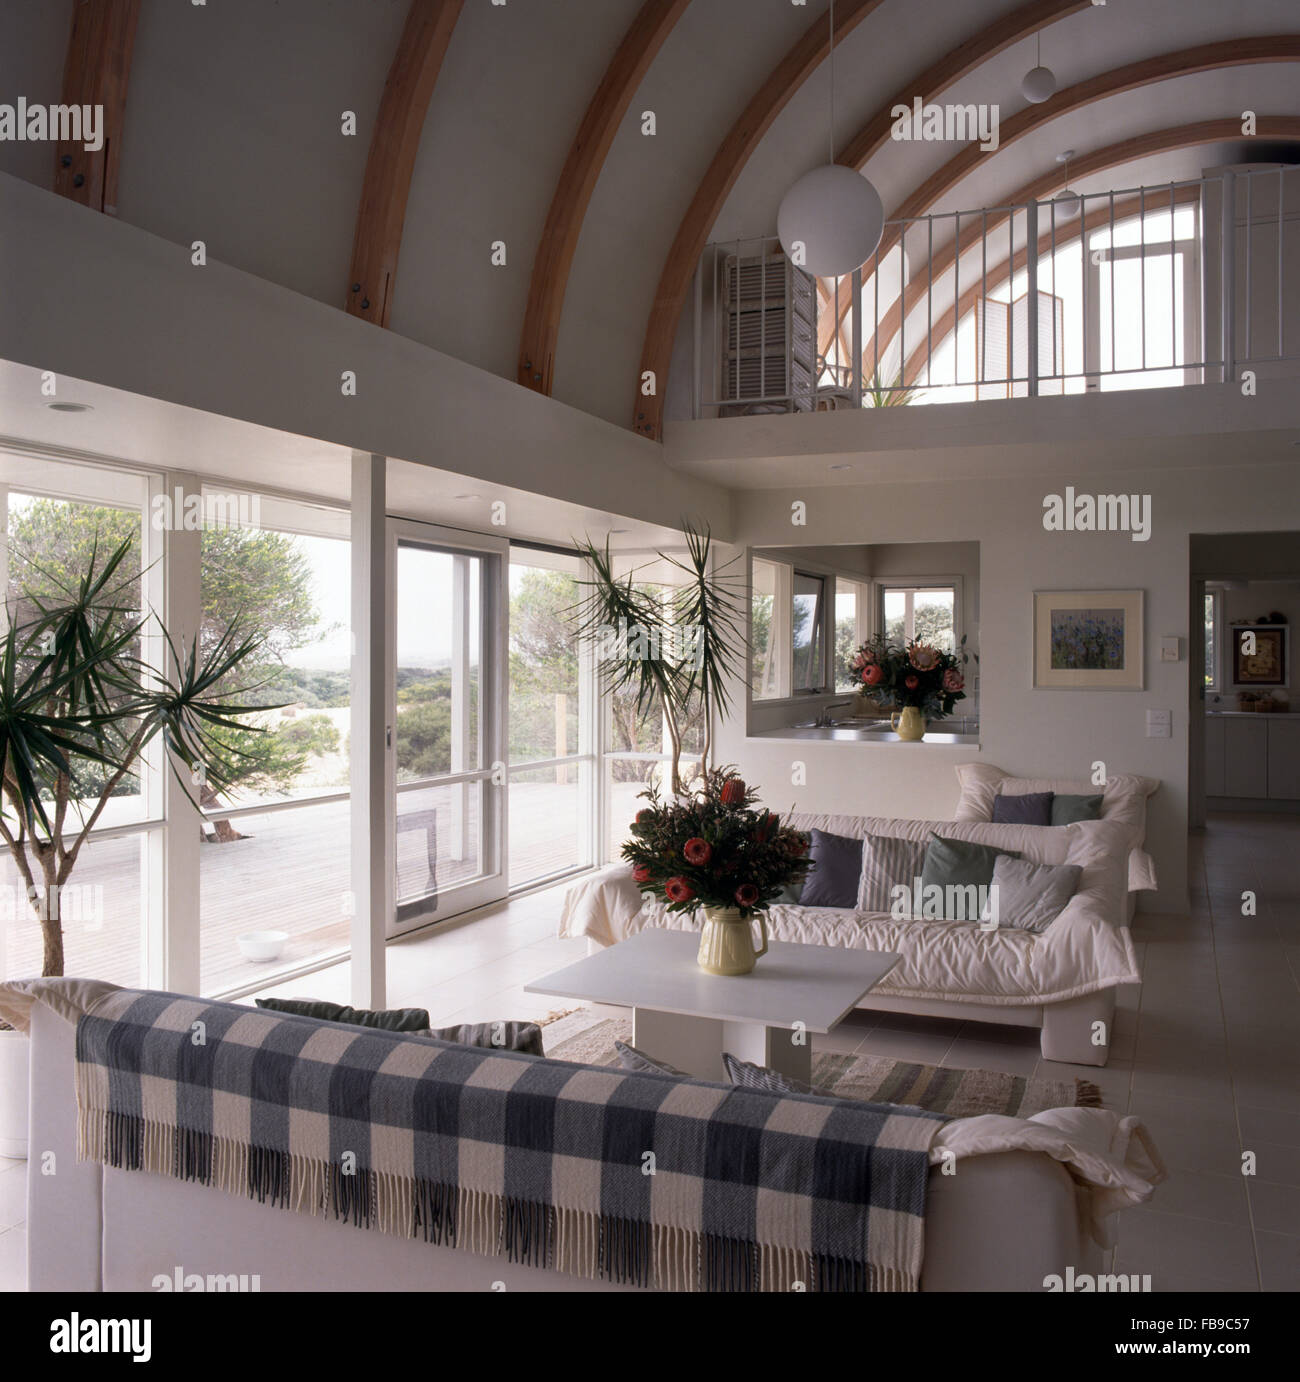 White Sofas In A Large Double Height Living Room With A